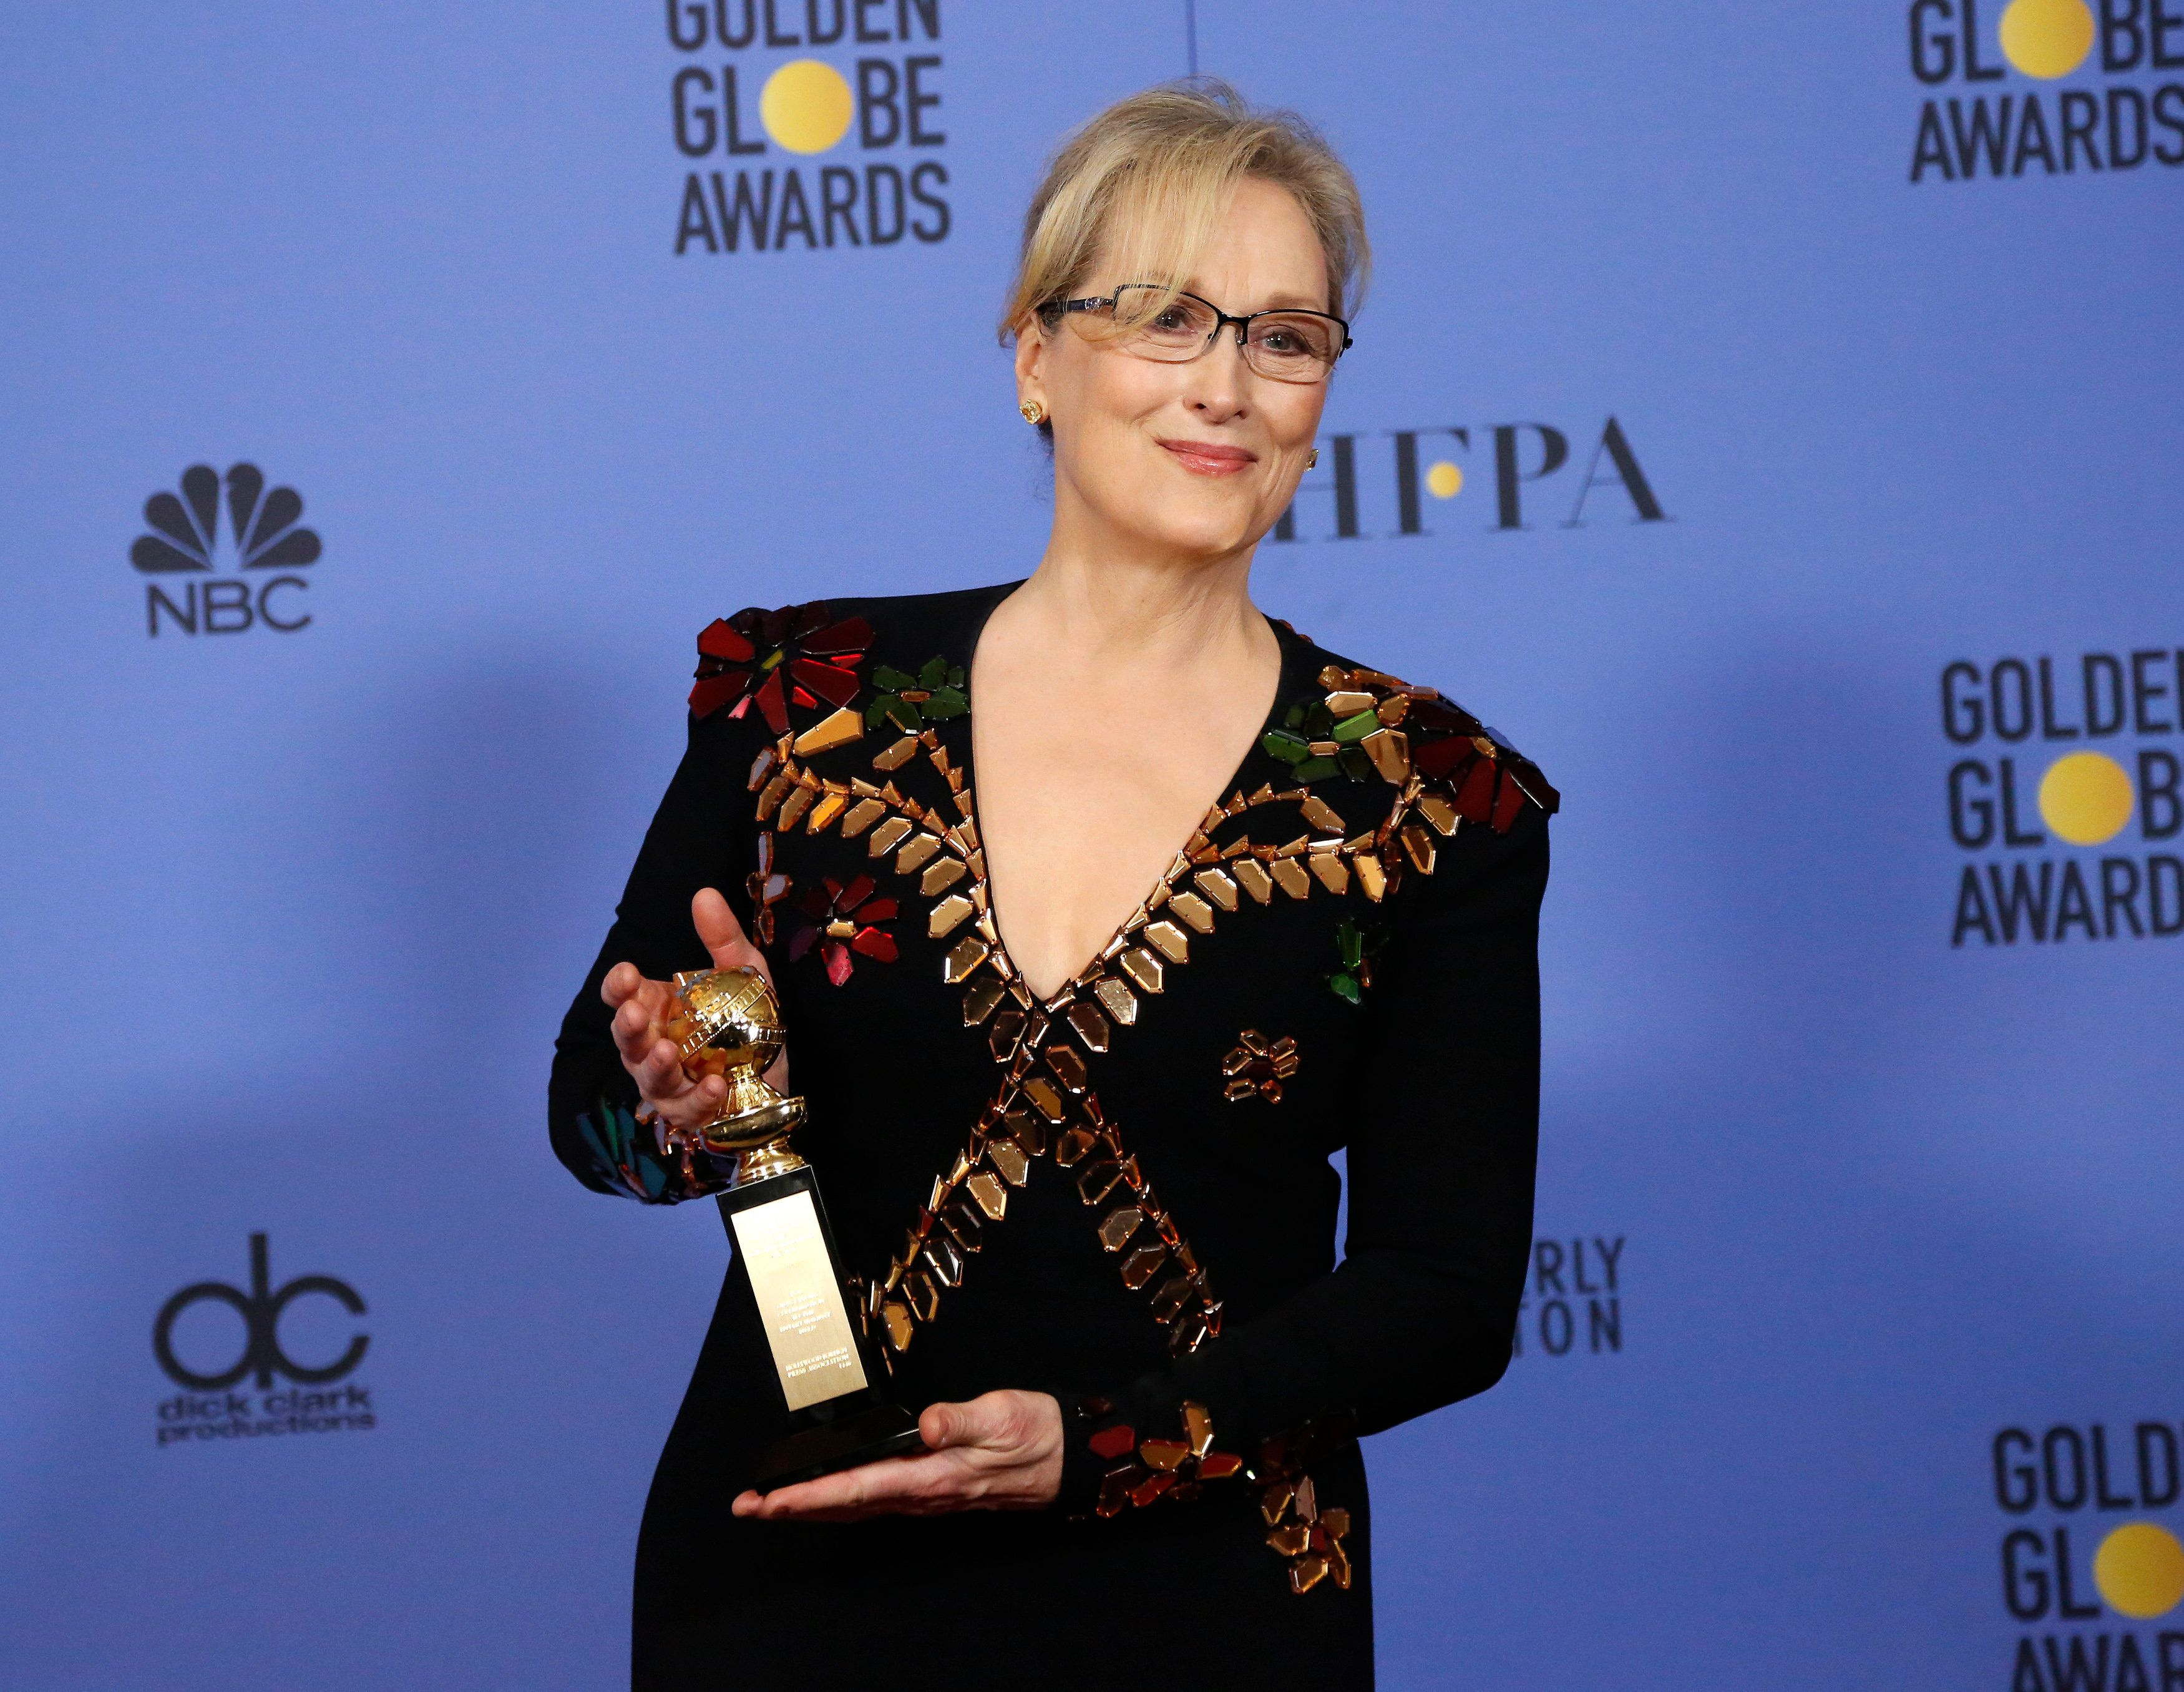 Meryl Streep holds the Cecil B. DeMille Award during the 74th Annual Golden Globe Awards in Beverly Hills, California, Jan. 8